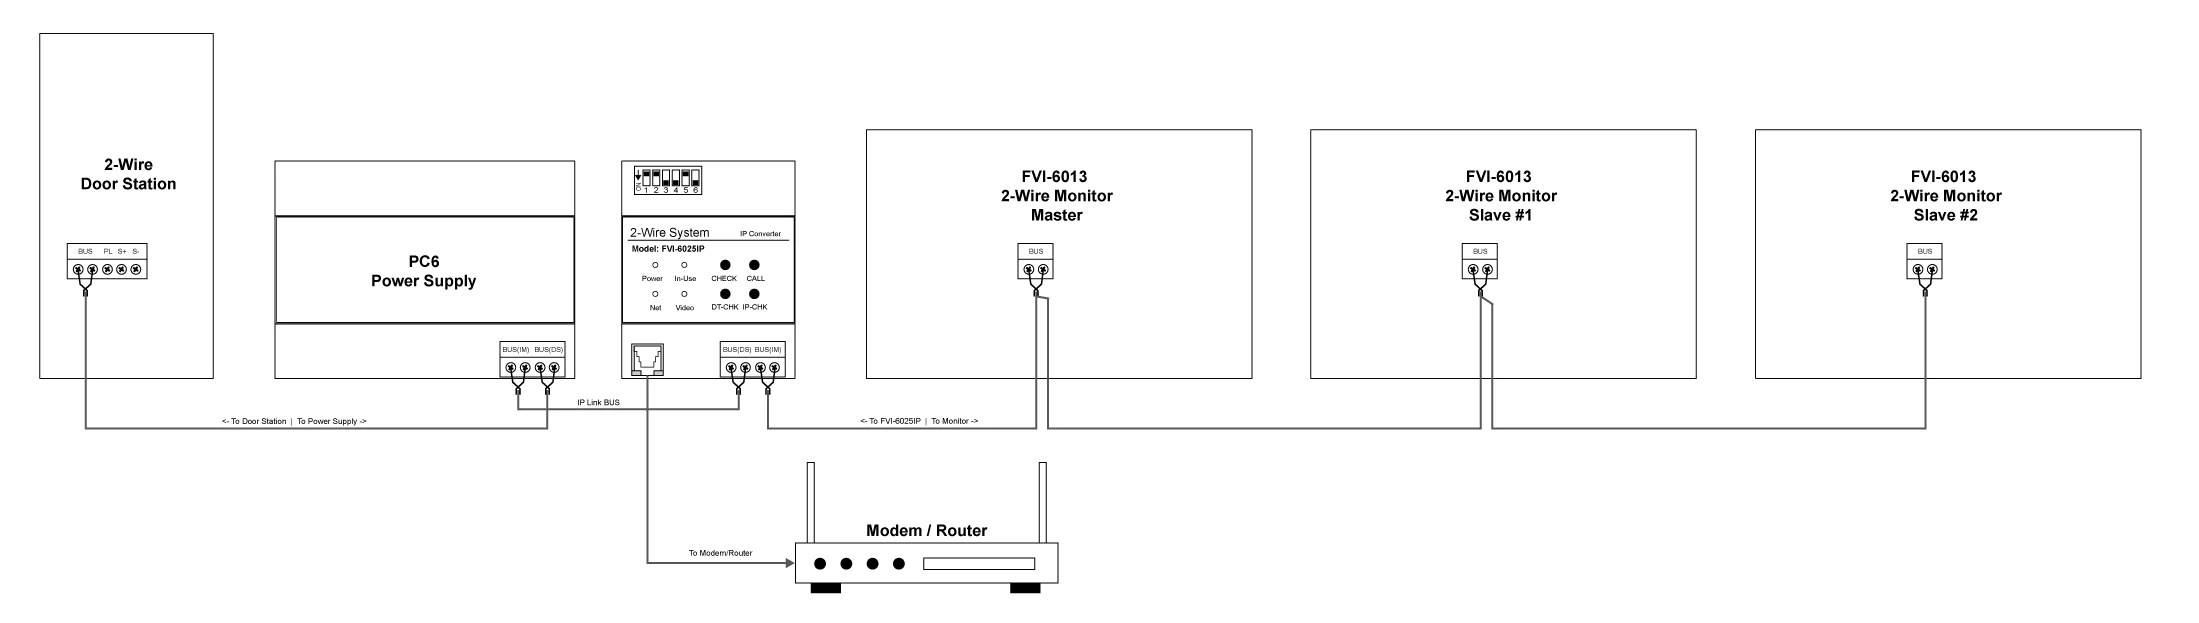 small resolution of 2 wire app instructions u2013 fermax australiafor a multiple monitor setup without a branch controller